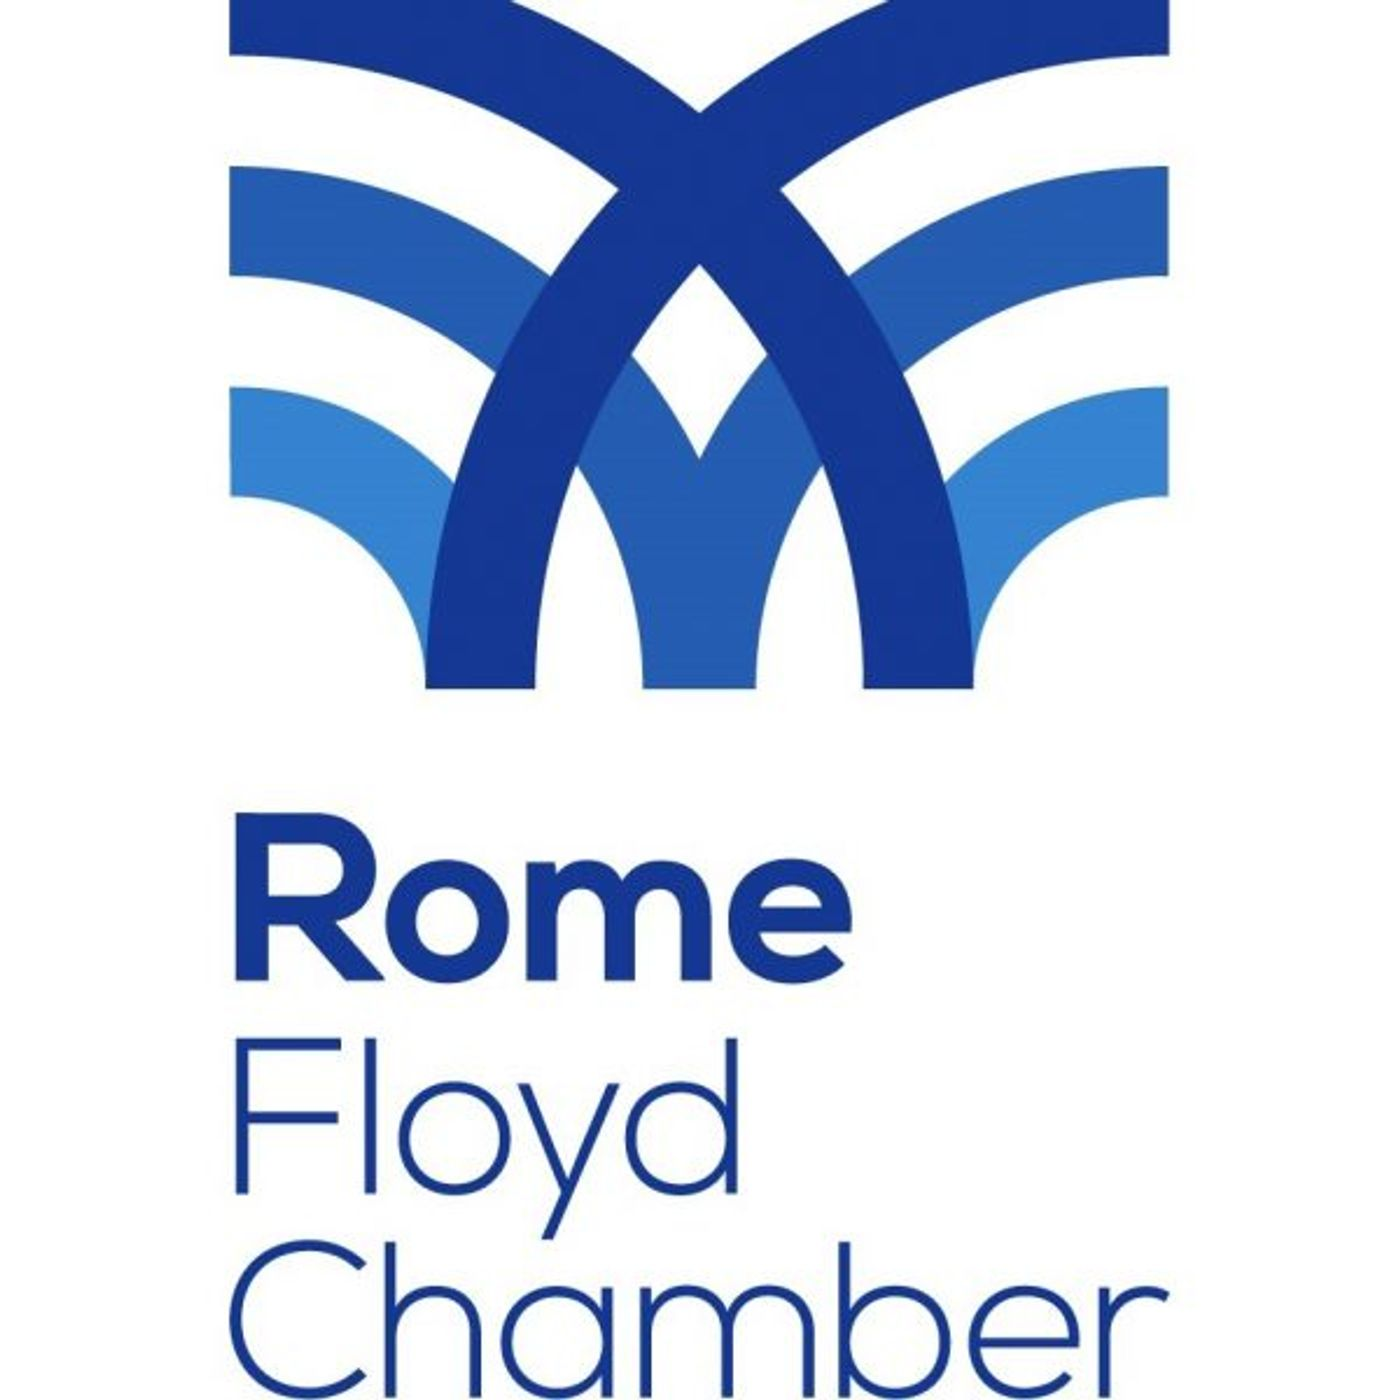 Rome Floyd Chamber Small Business Spotlight – Christie and Mike Meyer with Honeycream, Bryan Williams with Blastoff Pressure Washing, and Br